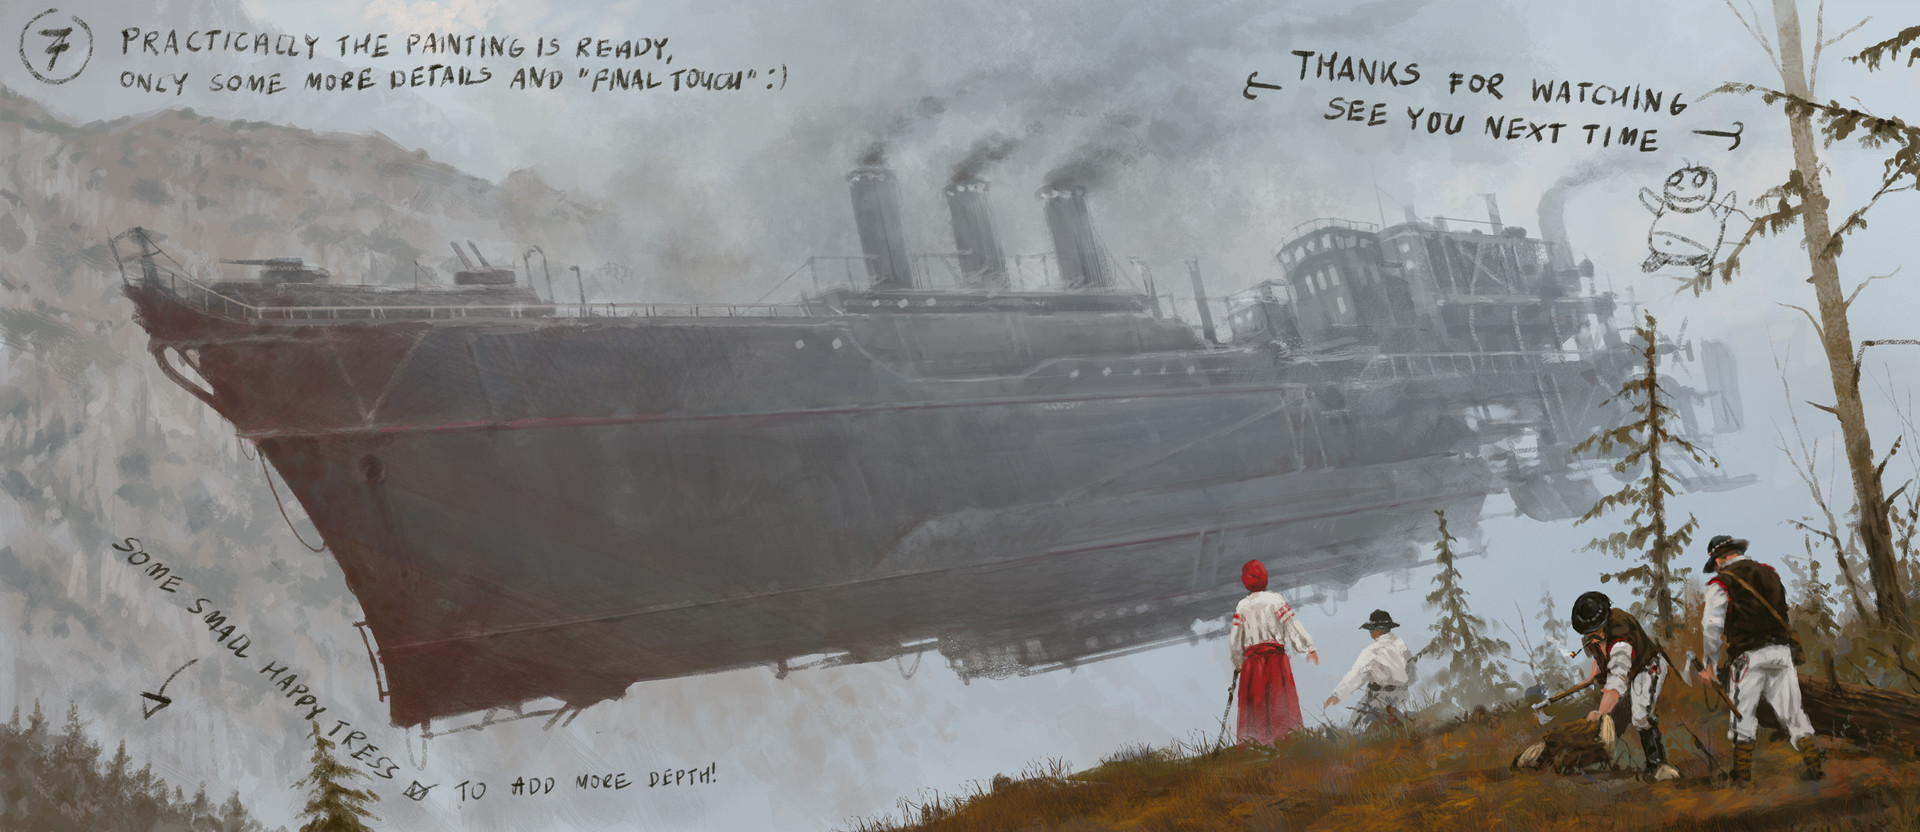 Jakub rozalski airship expansion cover art process6